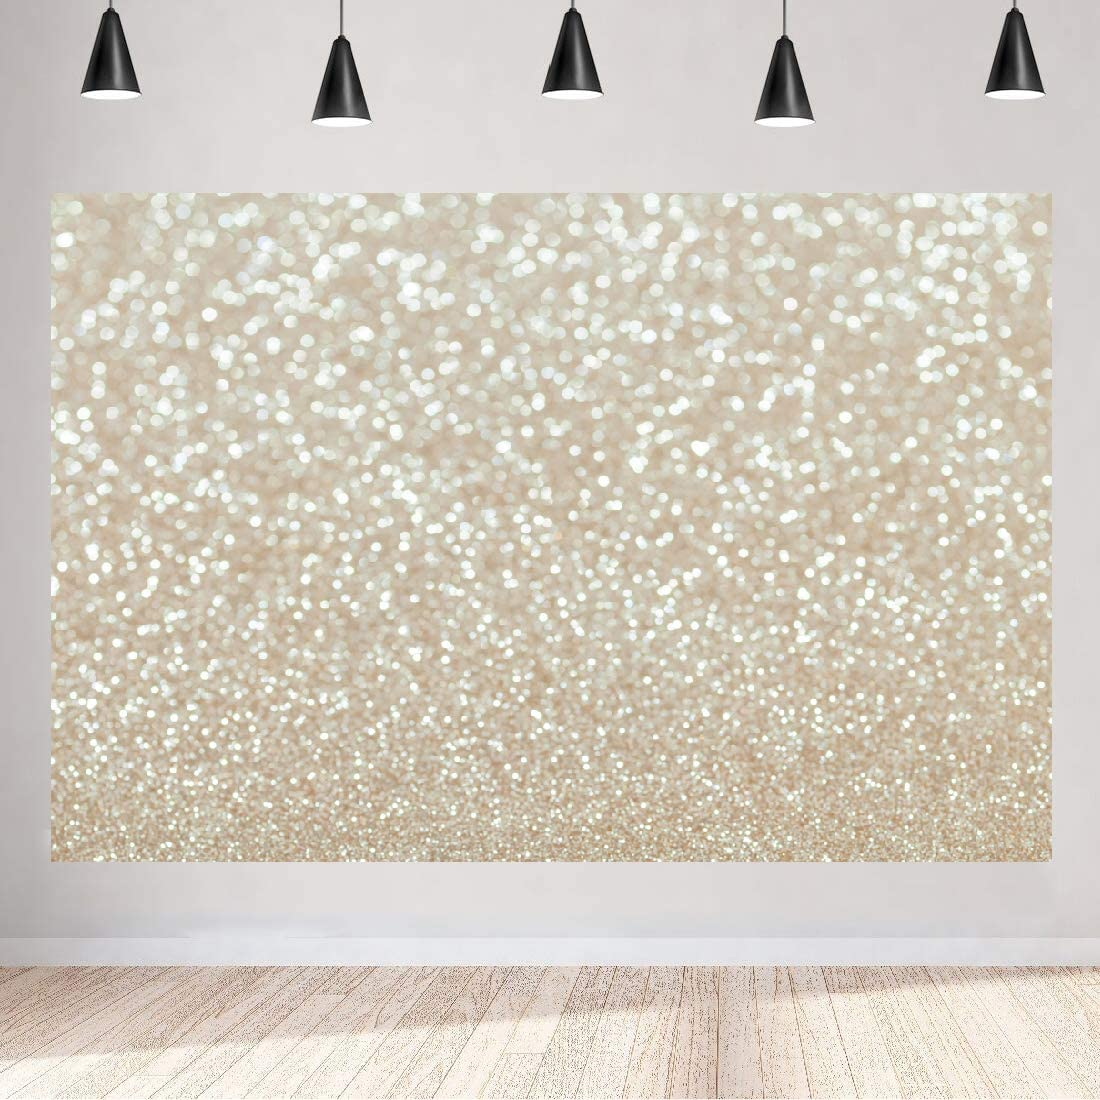 Aperturee 5x3ft Golden Glitter Christmas Abstract Backdrop Bokeh Shinning Sparkle Backgrounds for Photography Birthday Party Photo Booth Props